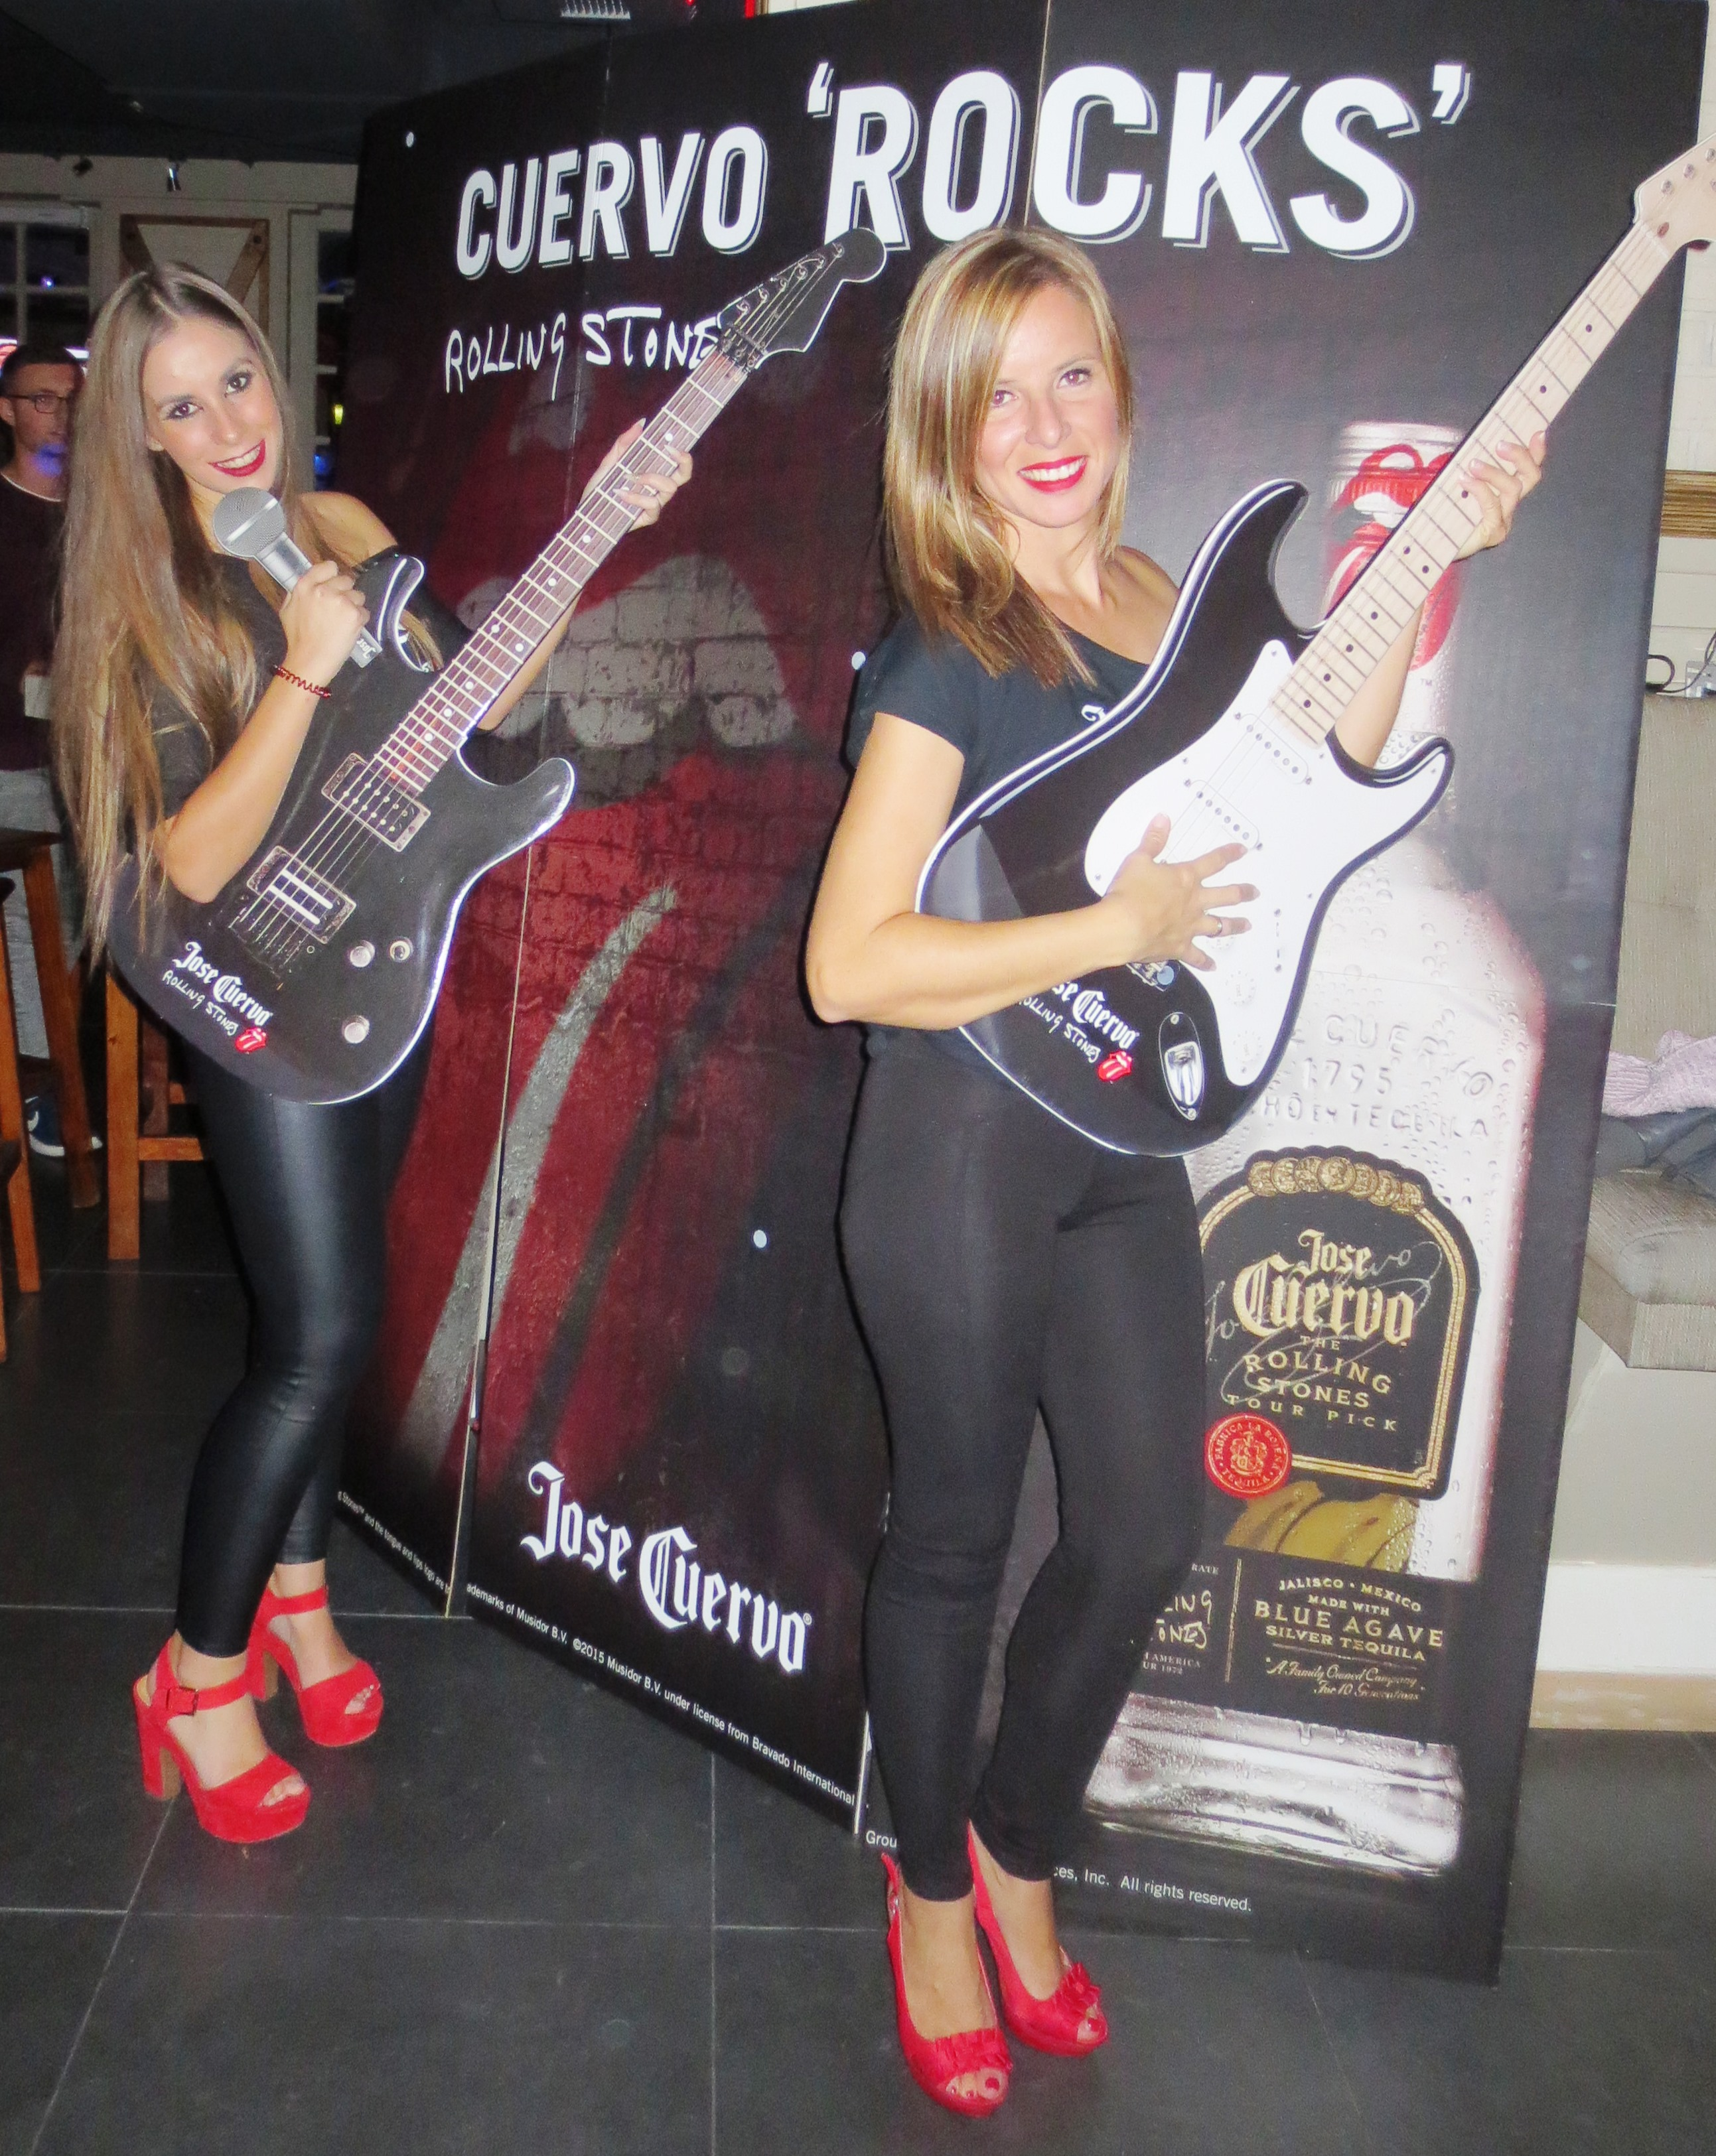 Jose Cuervo Rocks